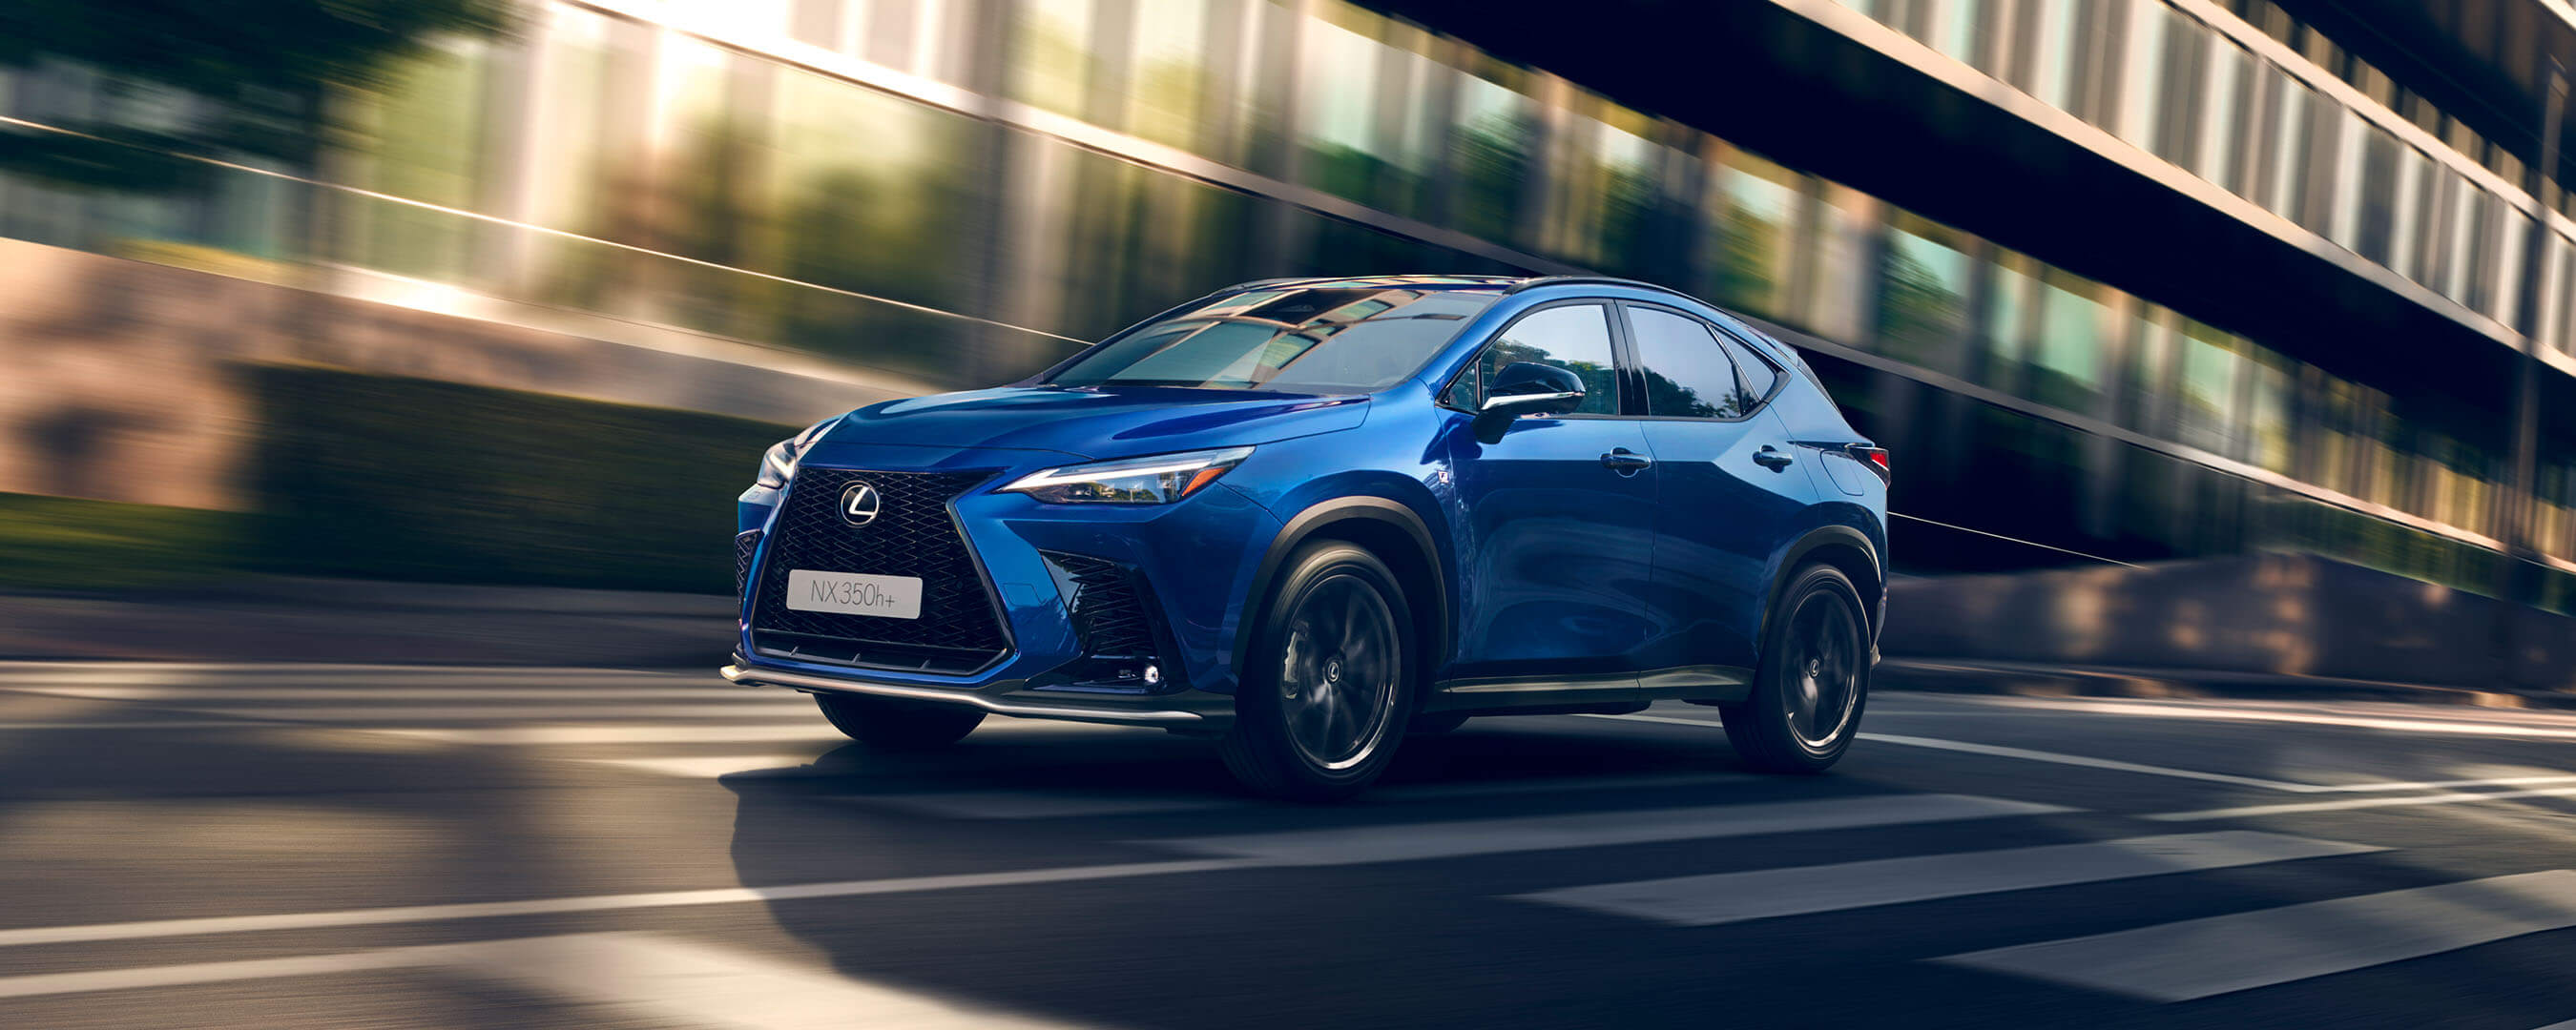 2021 lexus nx overview experience exterior front